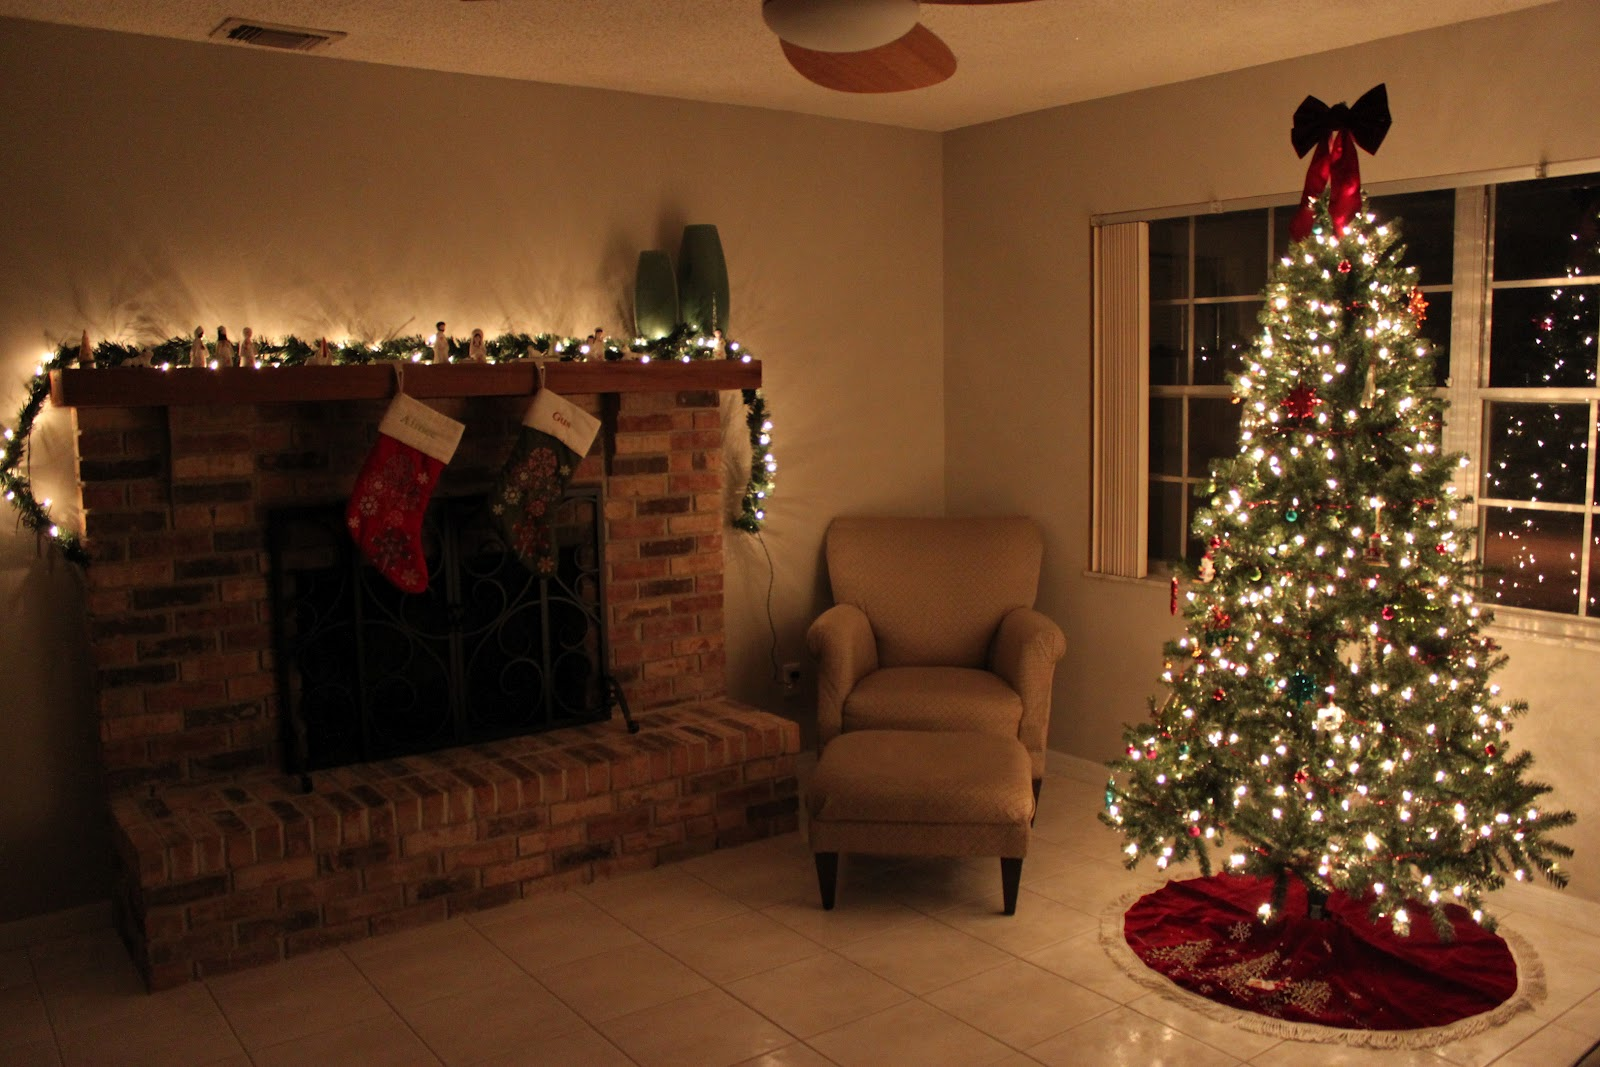 How To Decorate A Christmas Tree With Ornaments